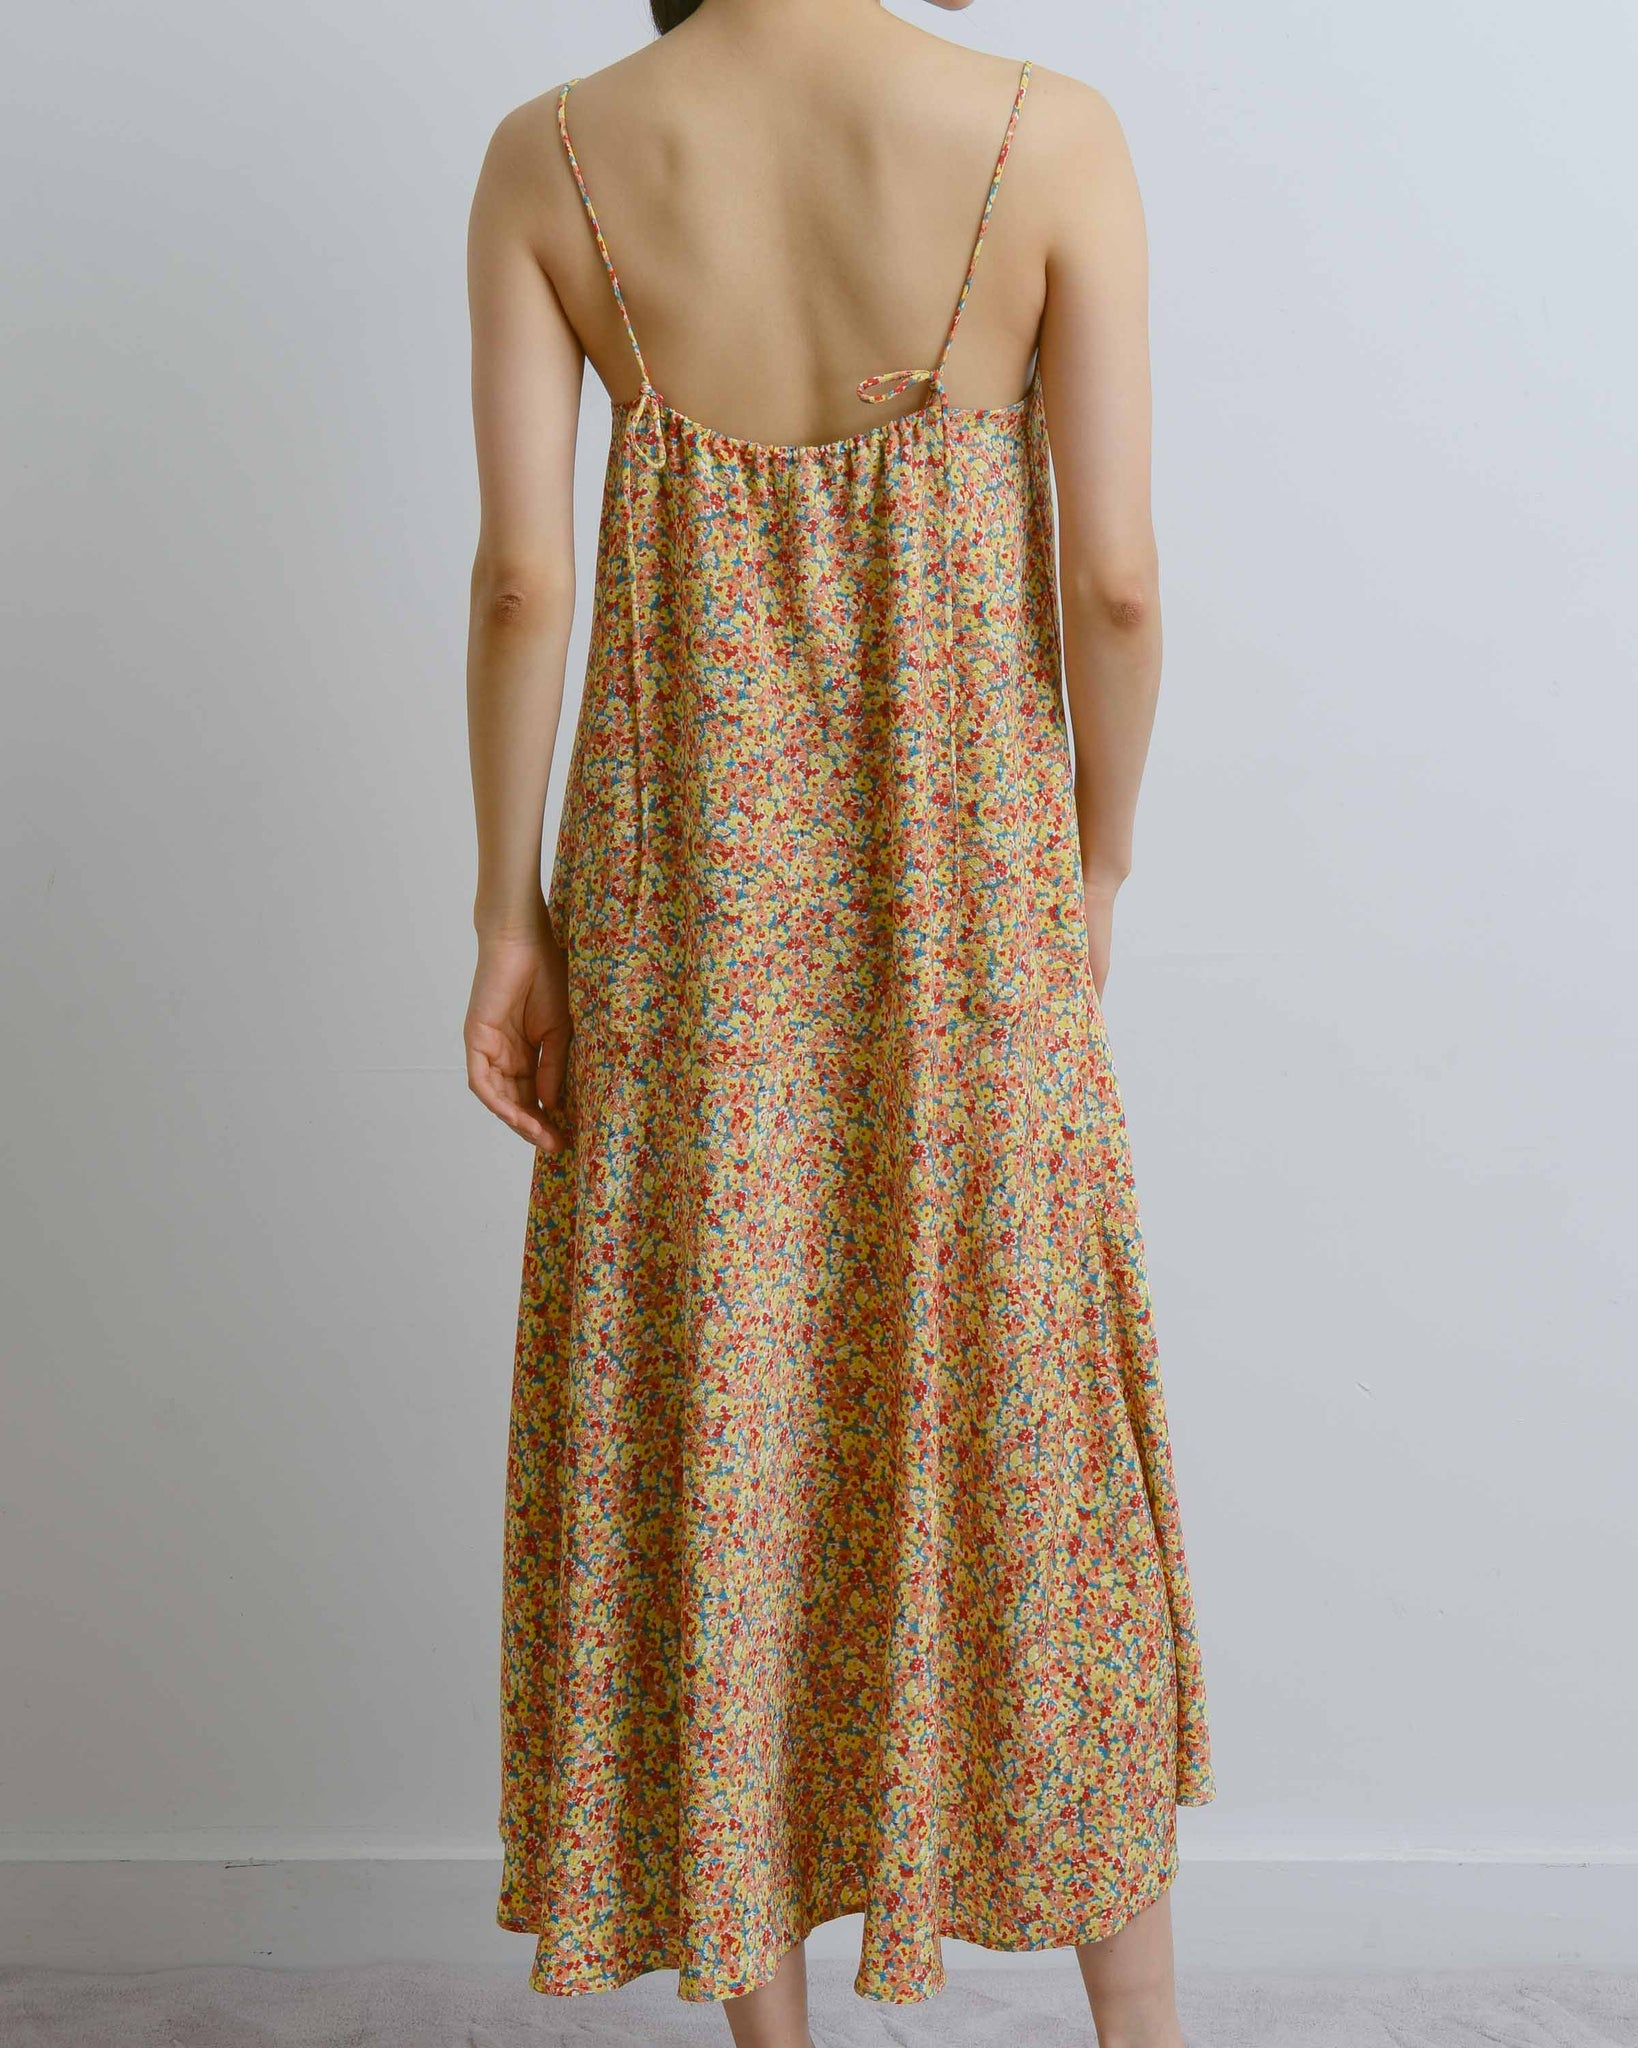 Gabriella Ditsy Floral Printed Dress